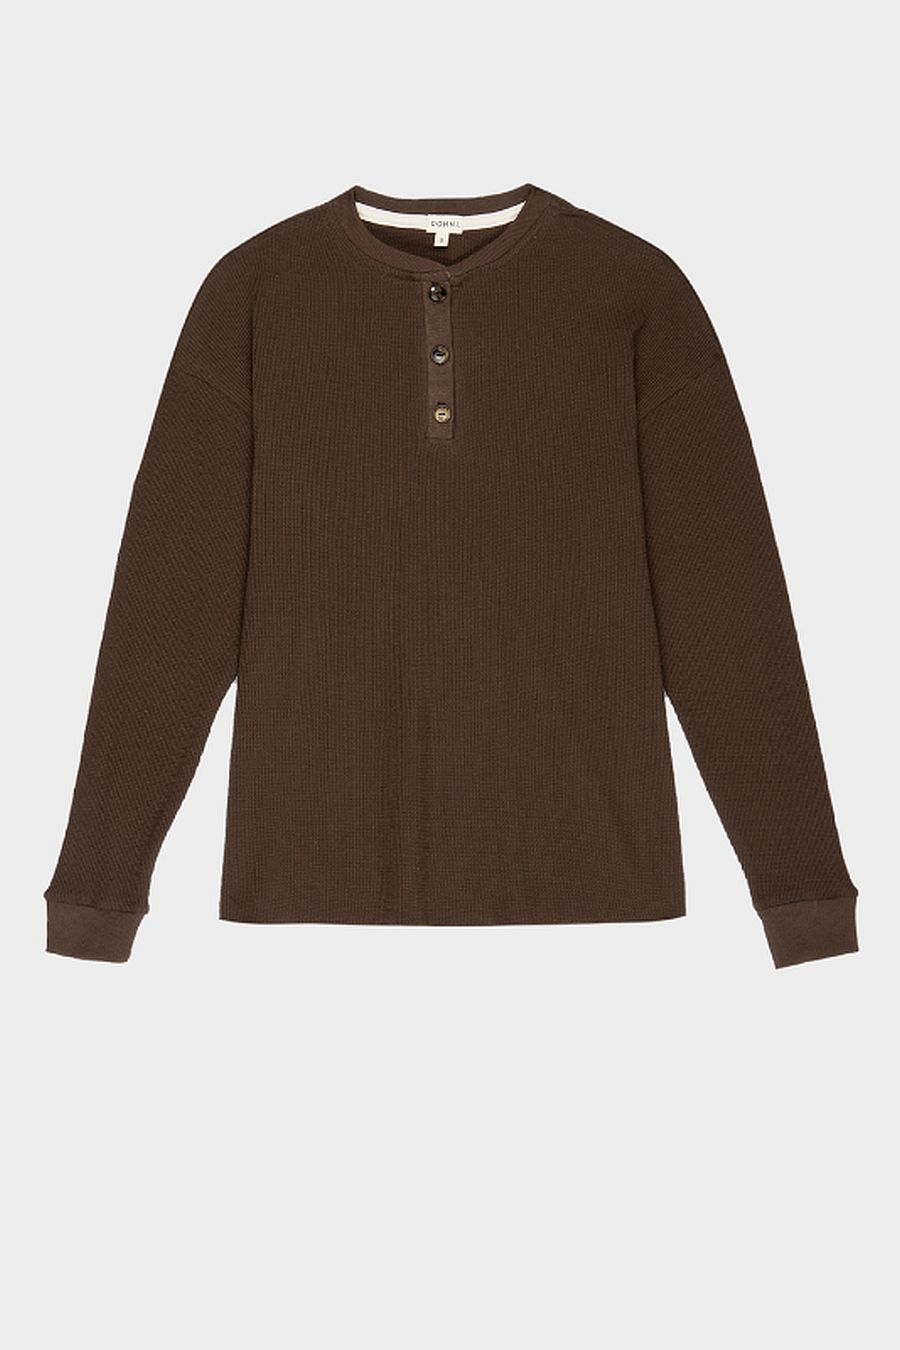 DONNI. Thermal Henley - Chocolate